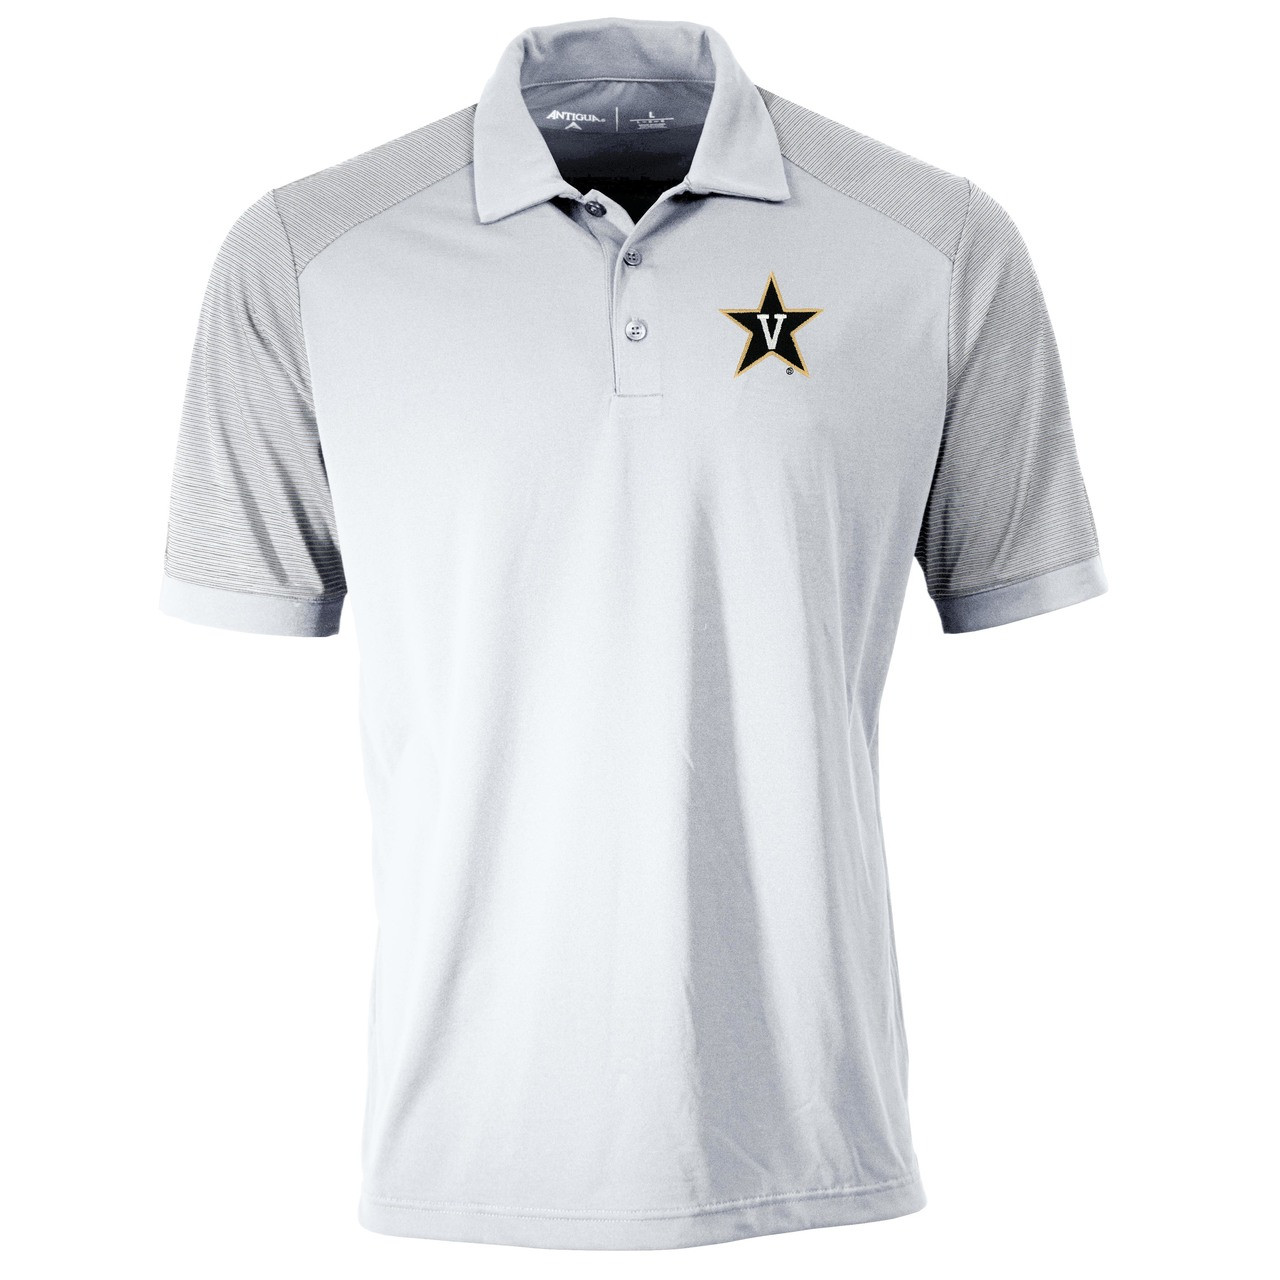 d9af37b5 Vanderbilt Men's Antigua Engage Polo - Nashville Predators Locker Room